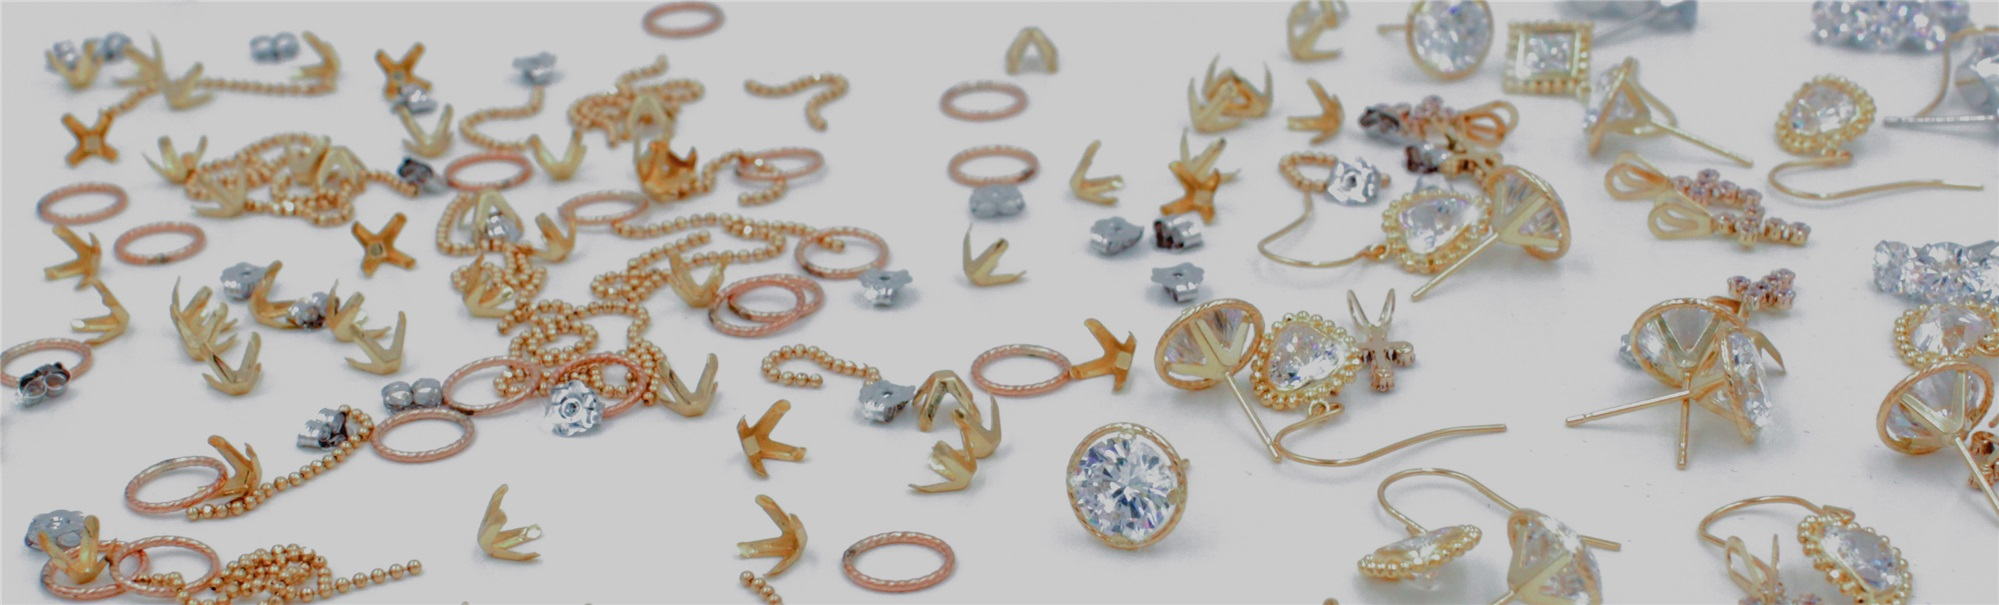 Jewelry Manufacturing & Design – Finished Jewelry & Components